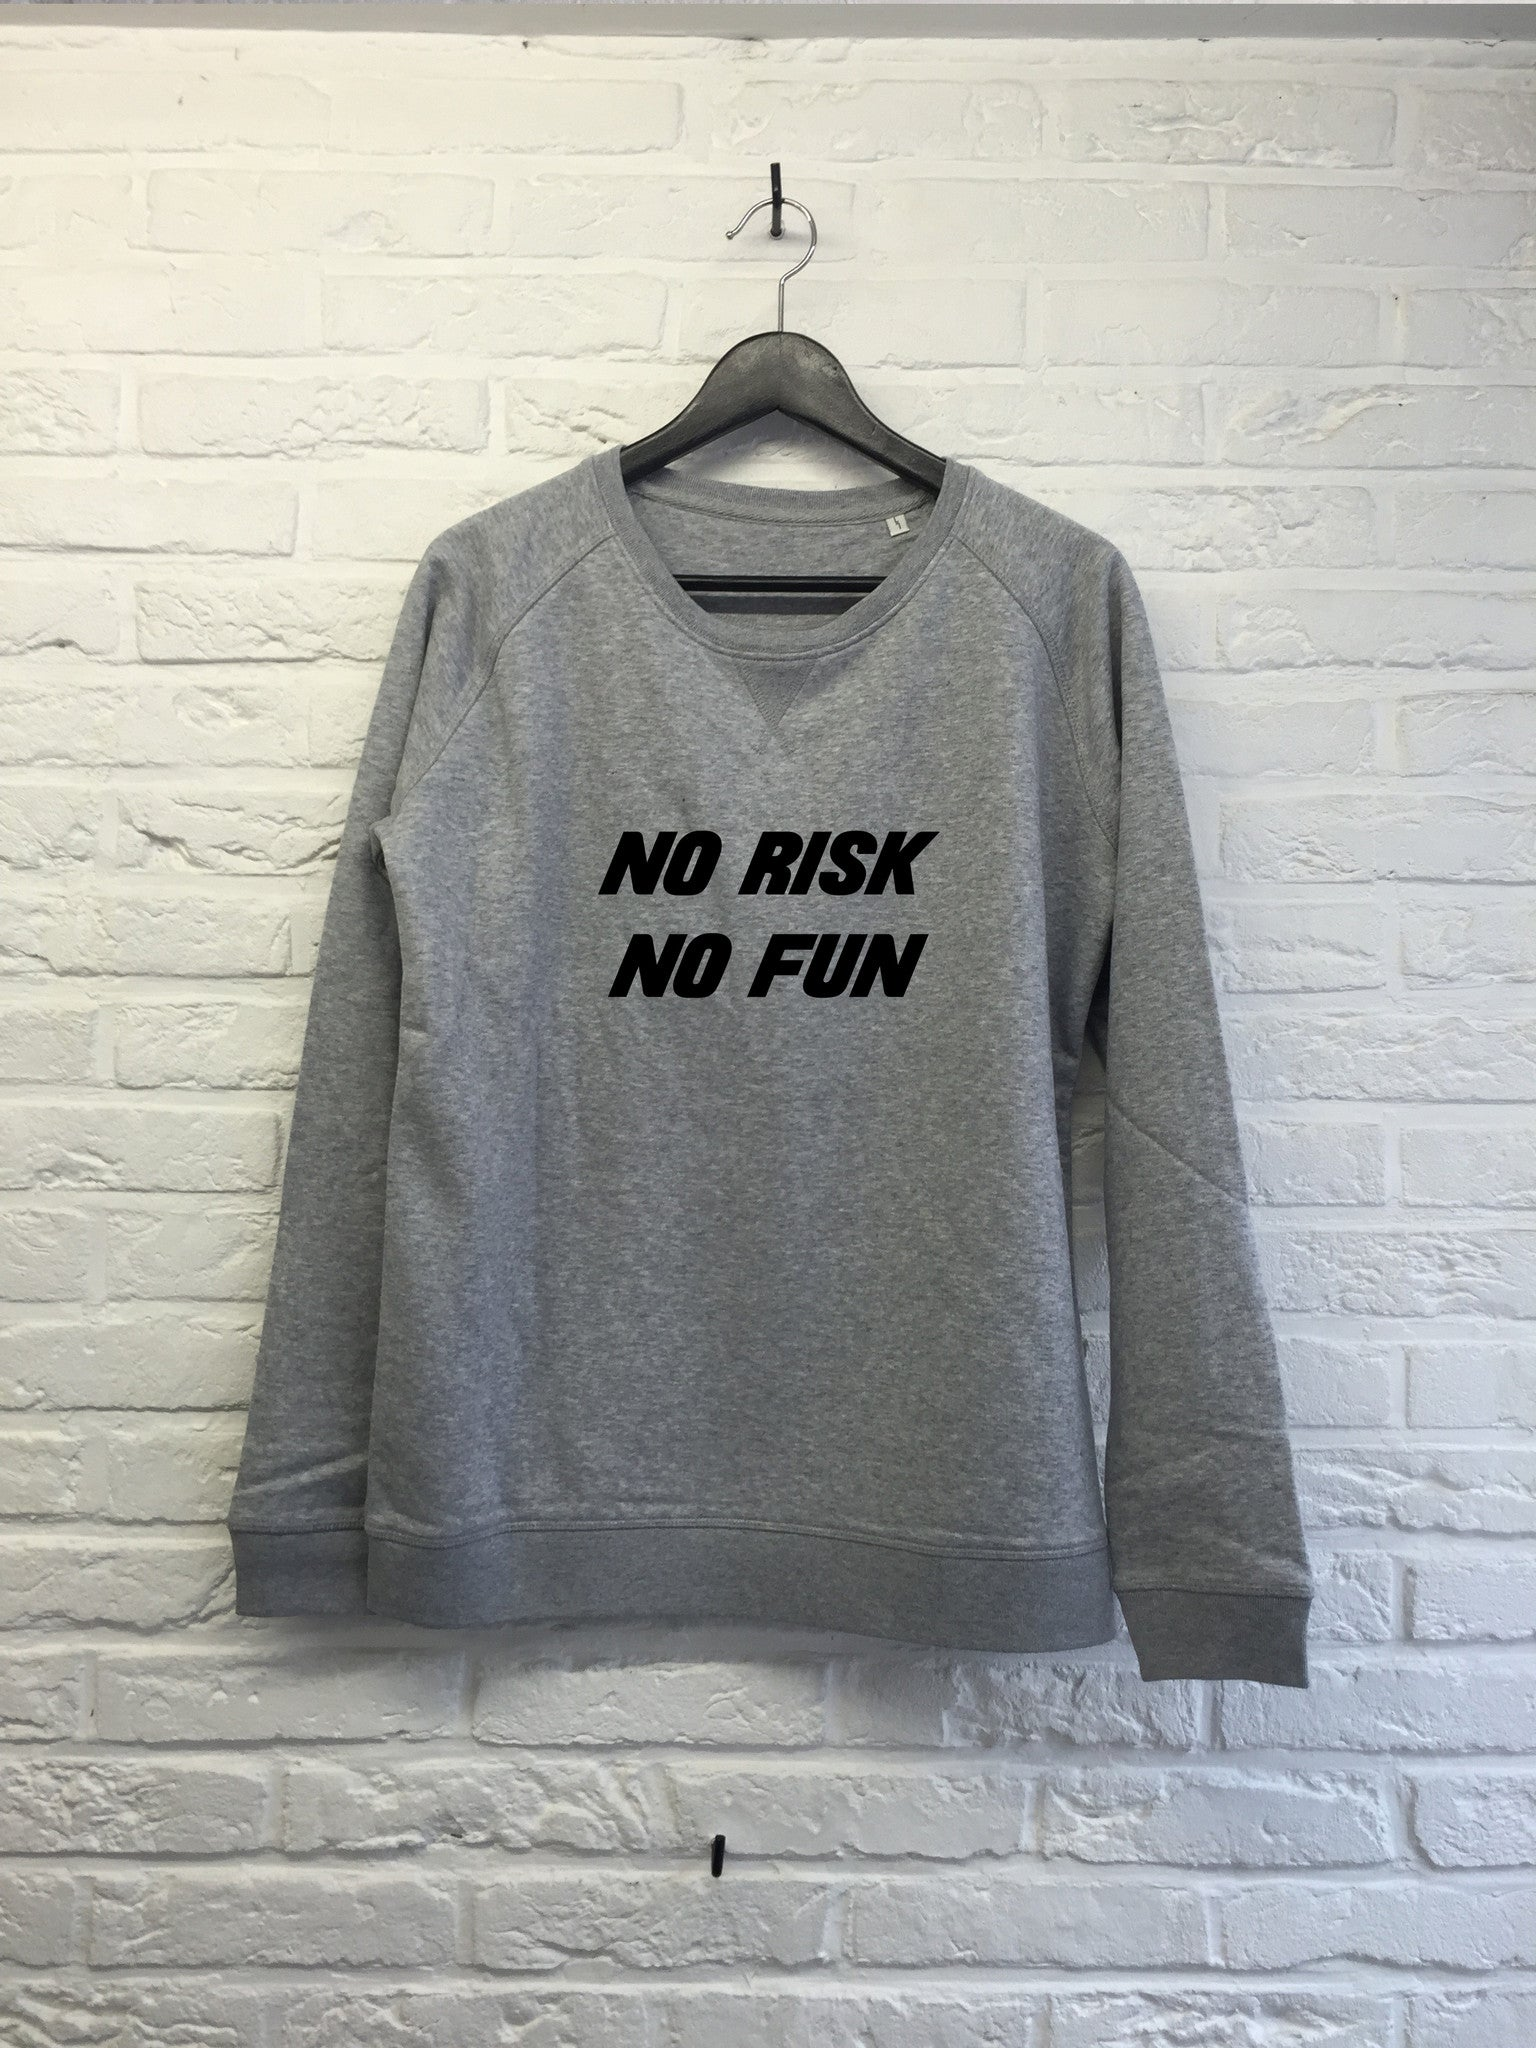 No risk no fun - Sweat - Femme-Sweat shirts-Atelier Amelot